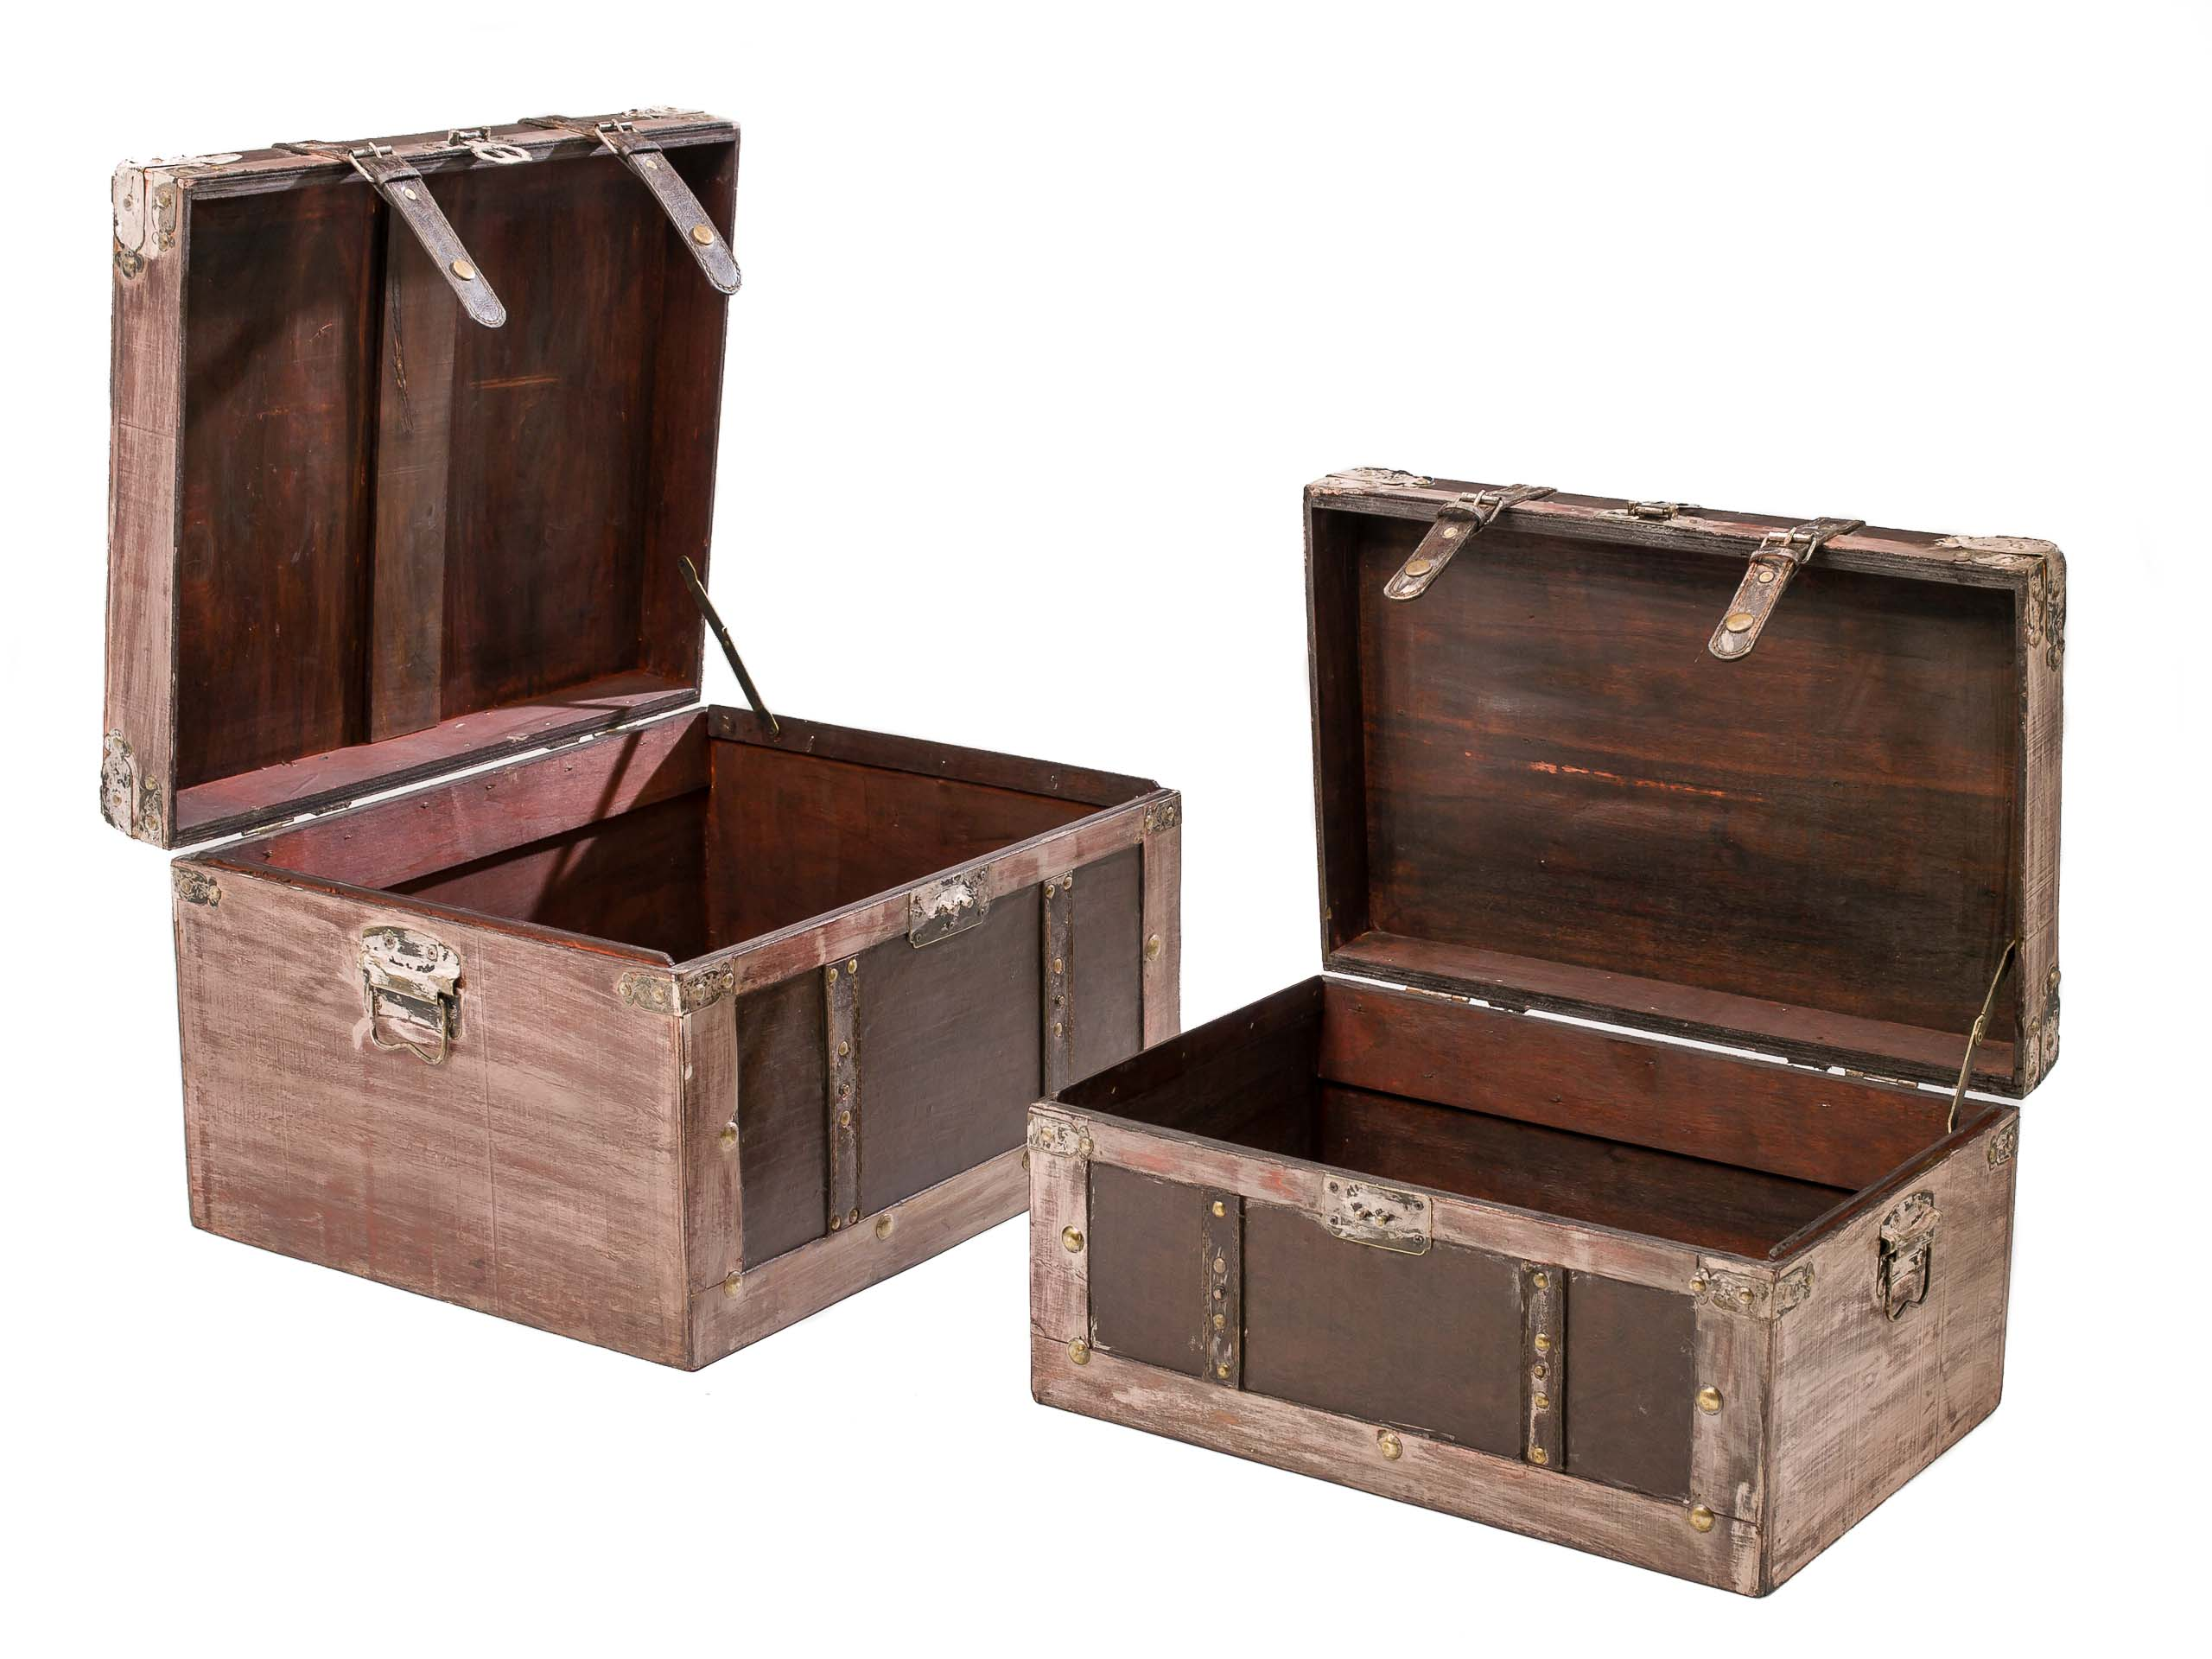 Truhe Aufbewahrung Set Of 2 Beautiful Chests Antique Style Set Wood Large